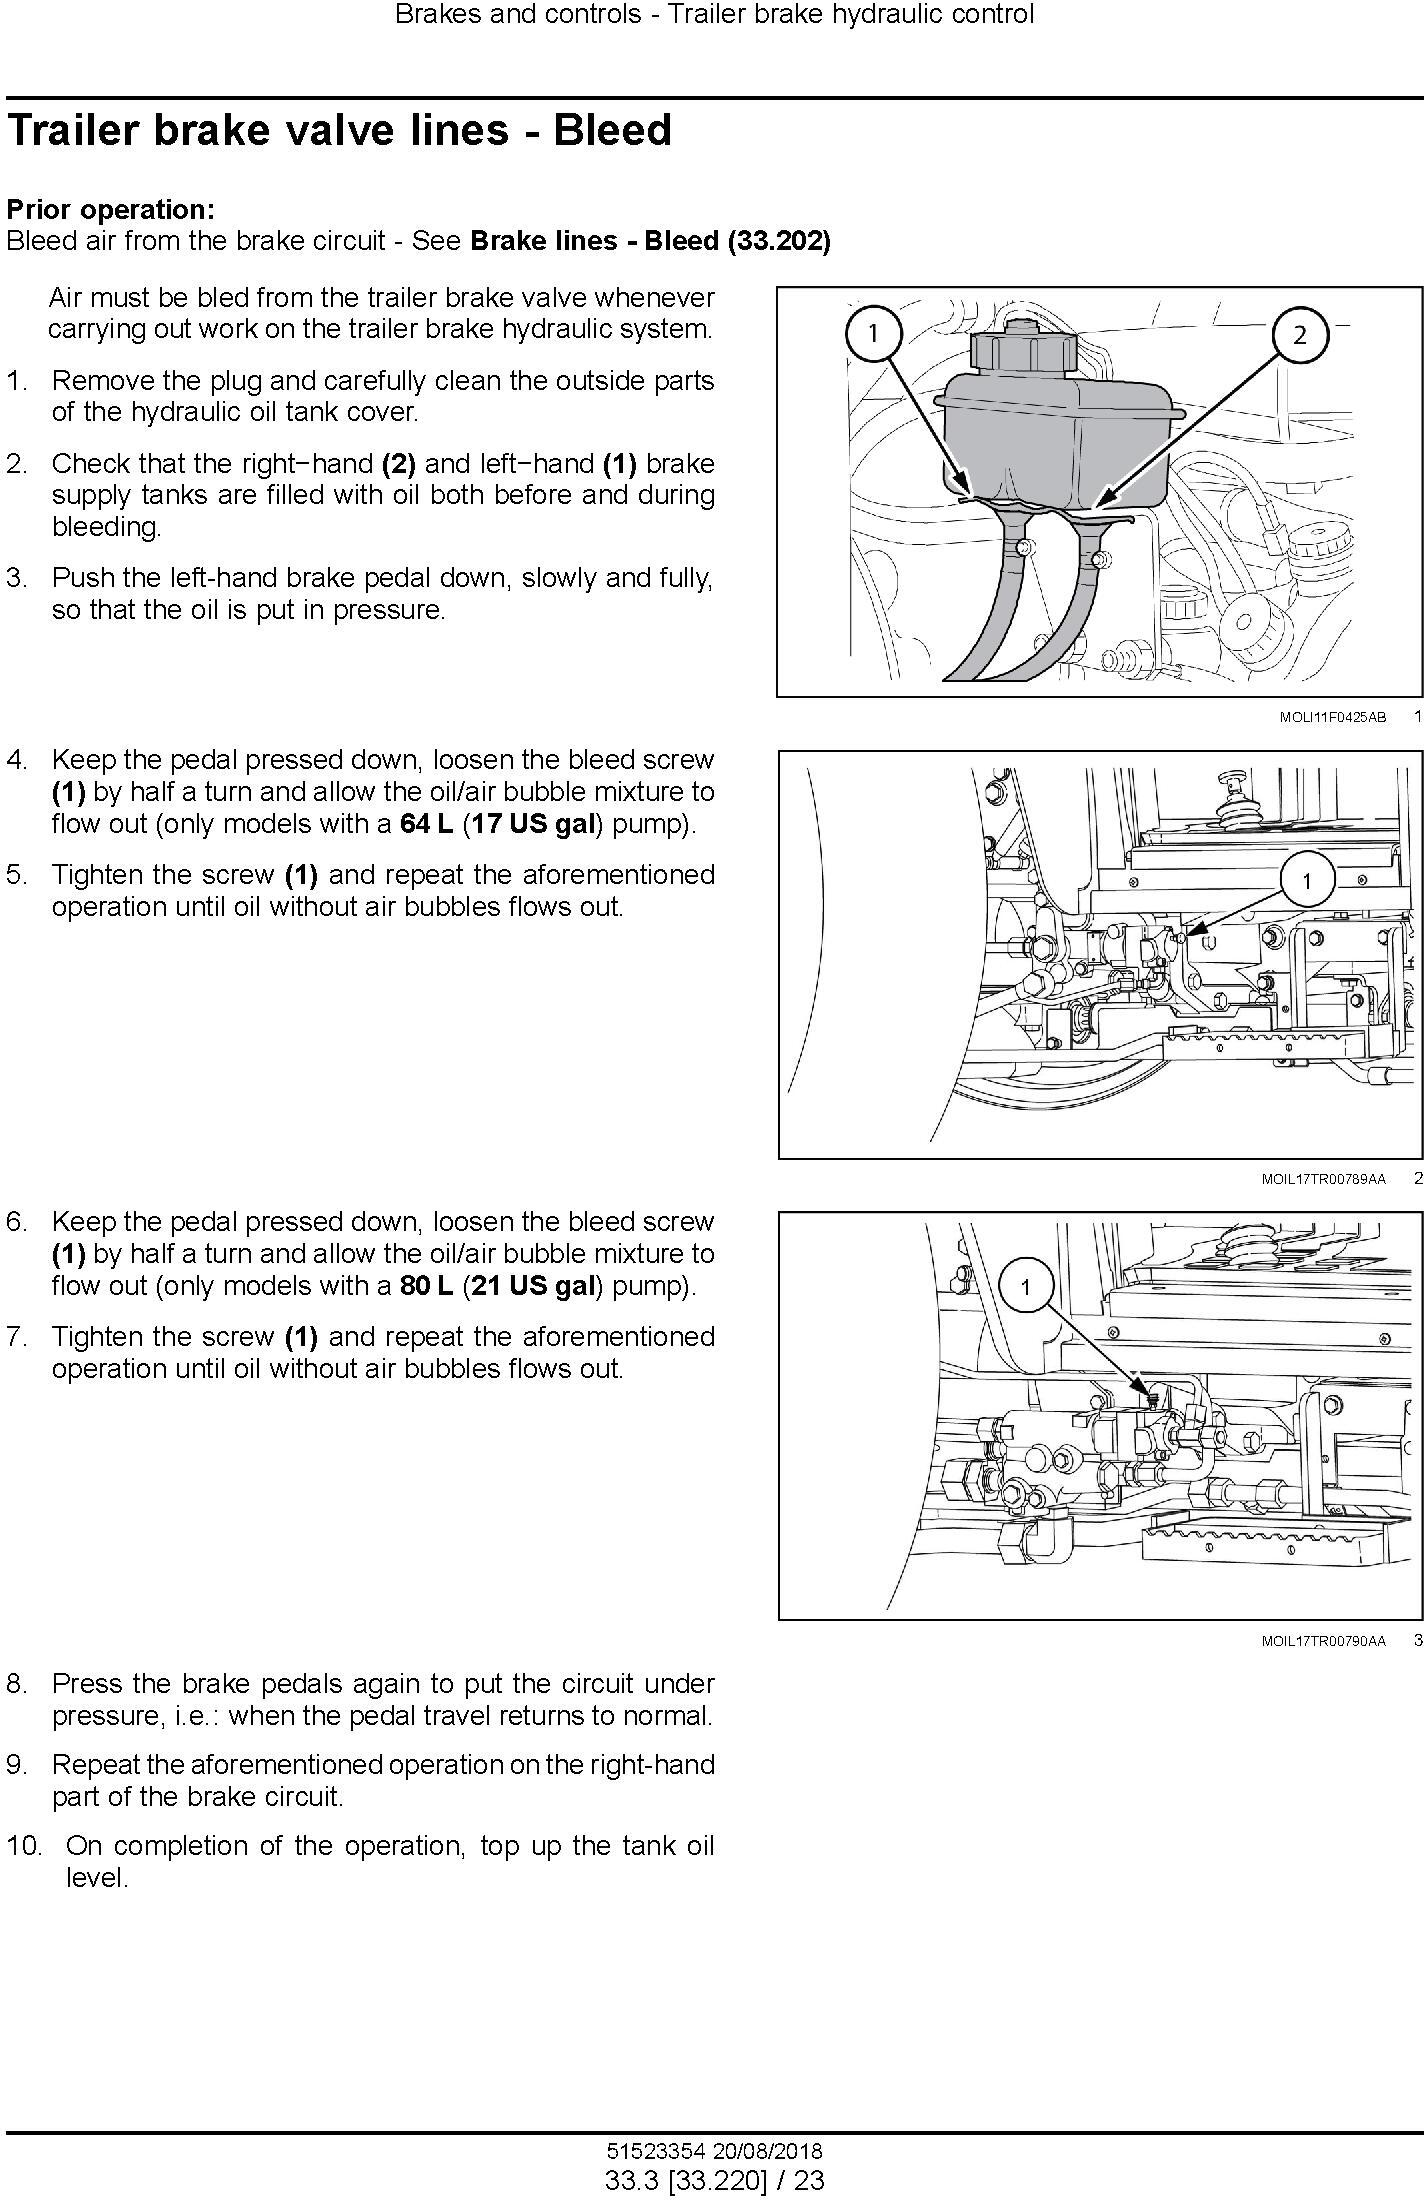 New Holland T4.80F, T4.90F, T4.100F, T4.110F Tractor Service Manual (Australia, NZ, Latin Amereca) - 2